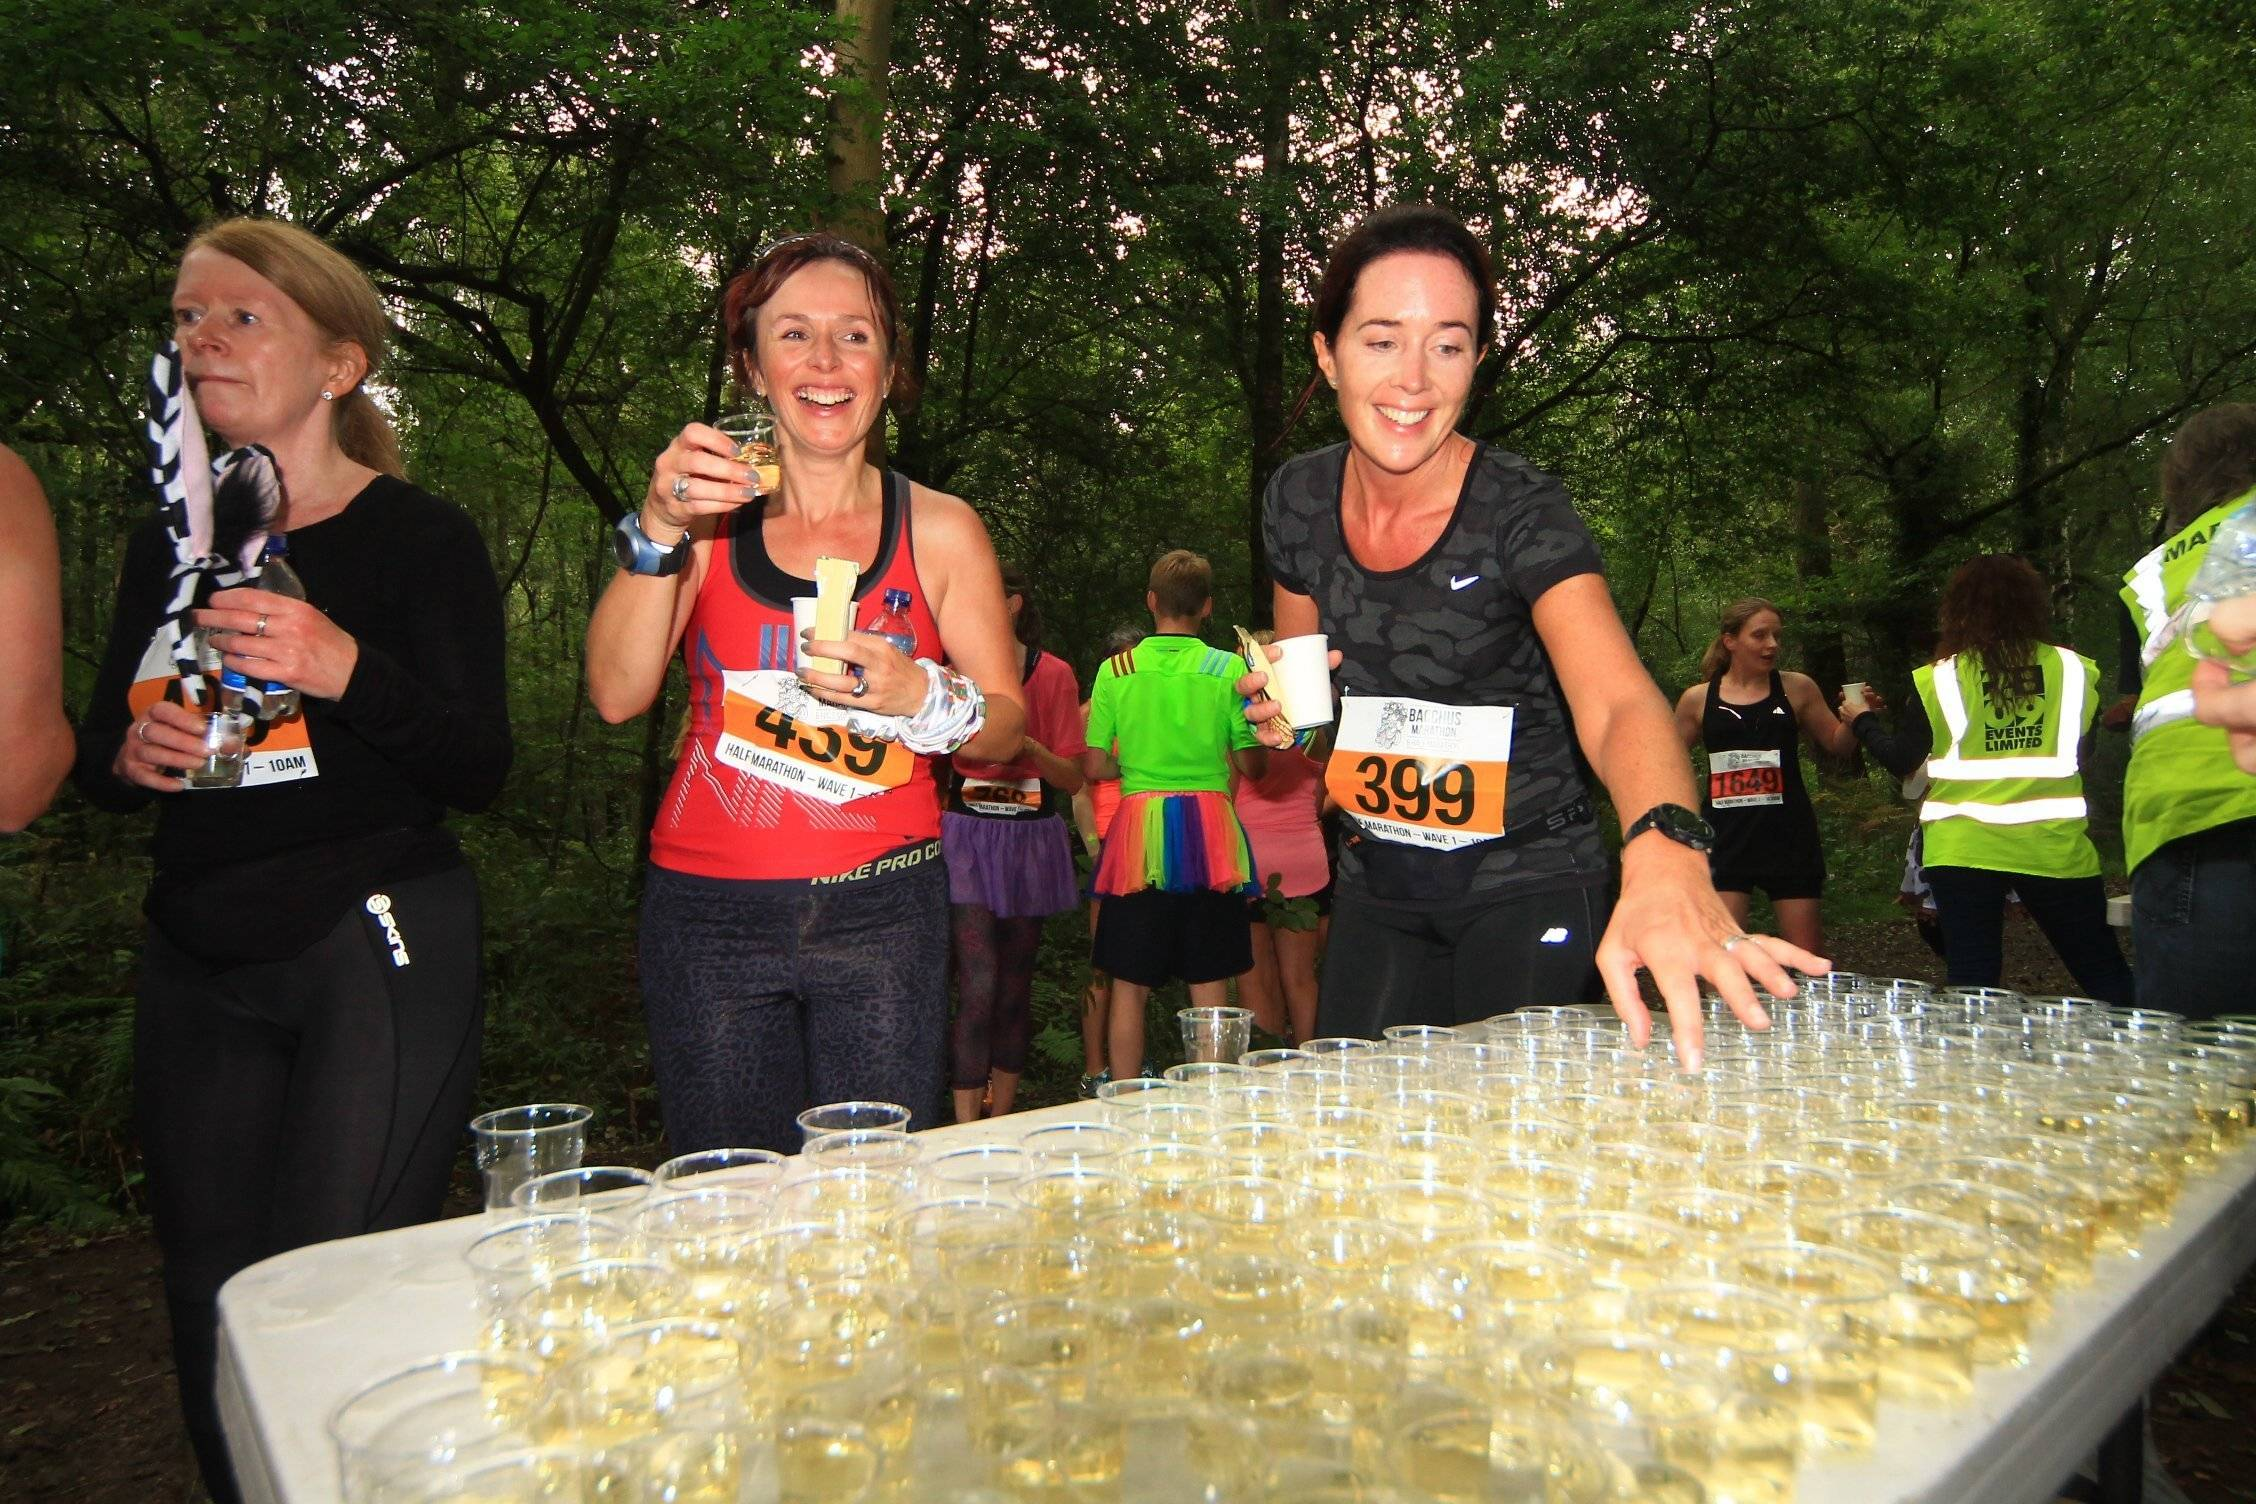 If you love wine, how about competing in Run Bacchus – a wine-fuelled marathon